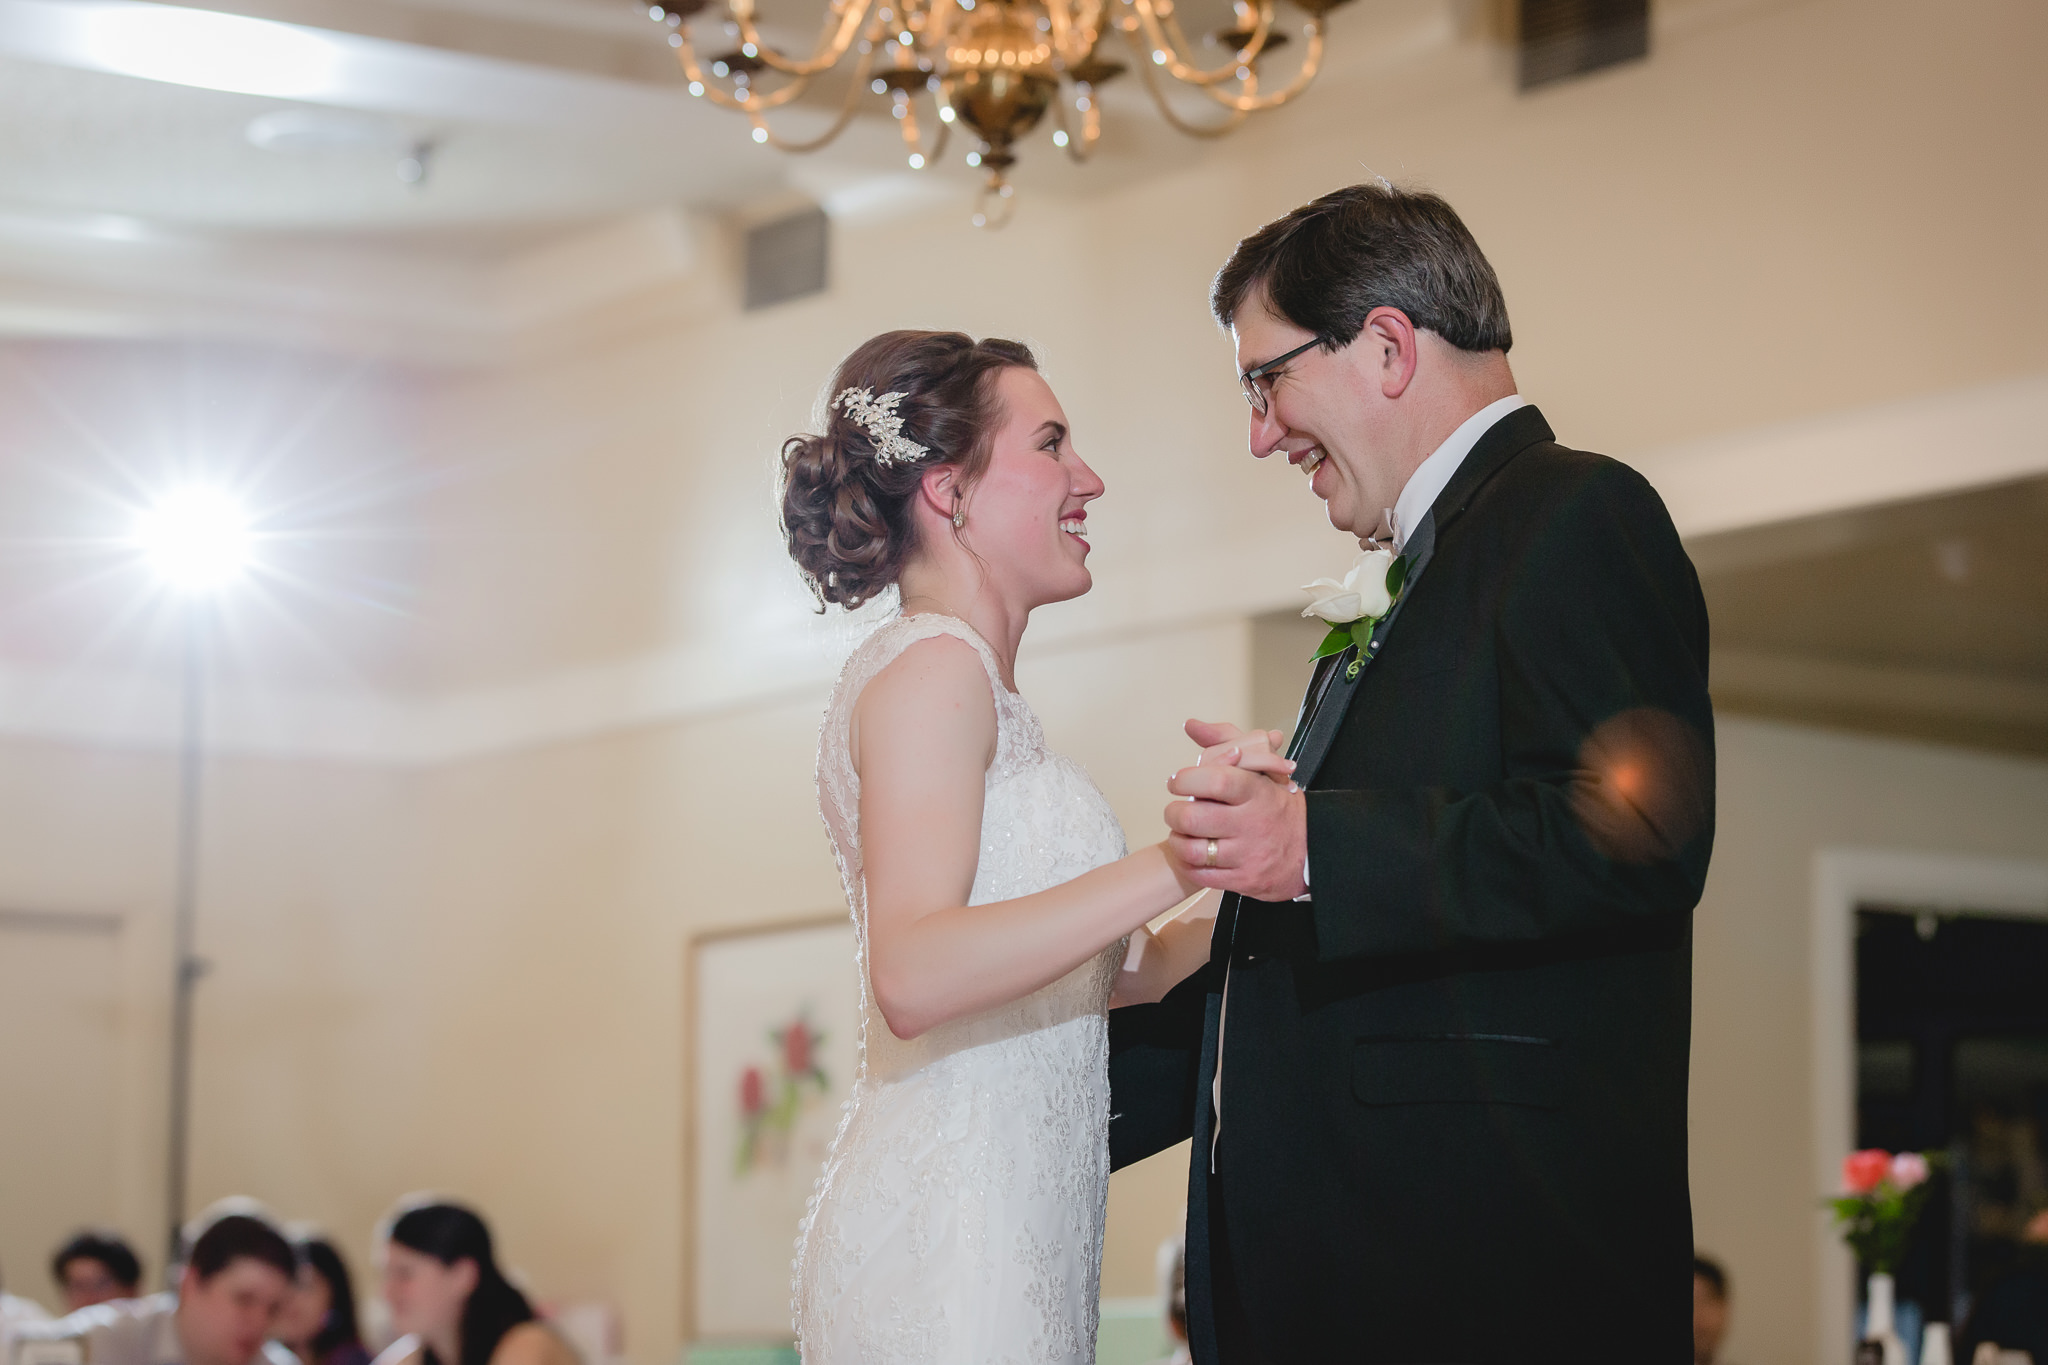 Father-daughter dance at a Shannopin Country Club wedding reception